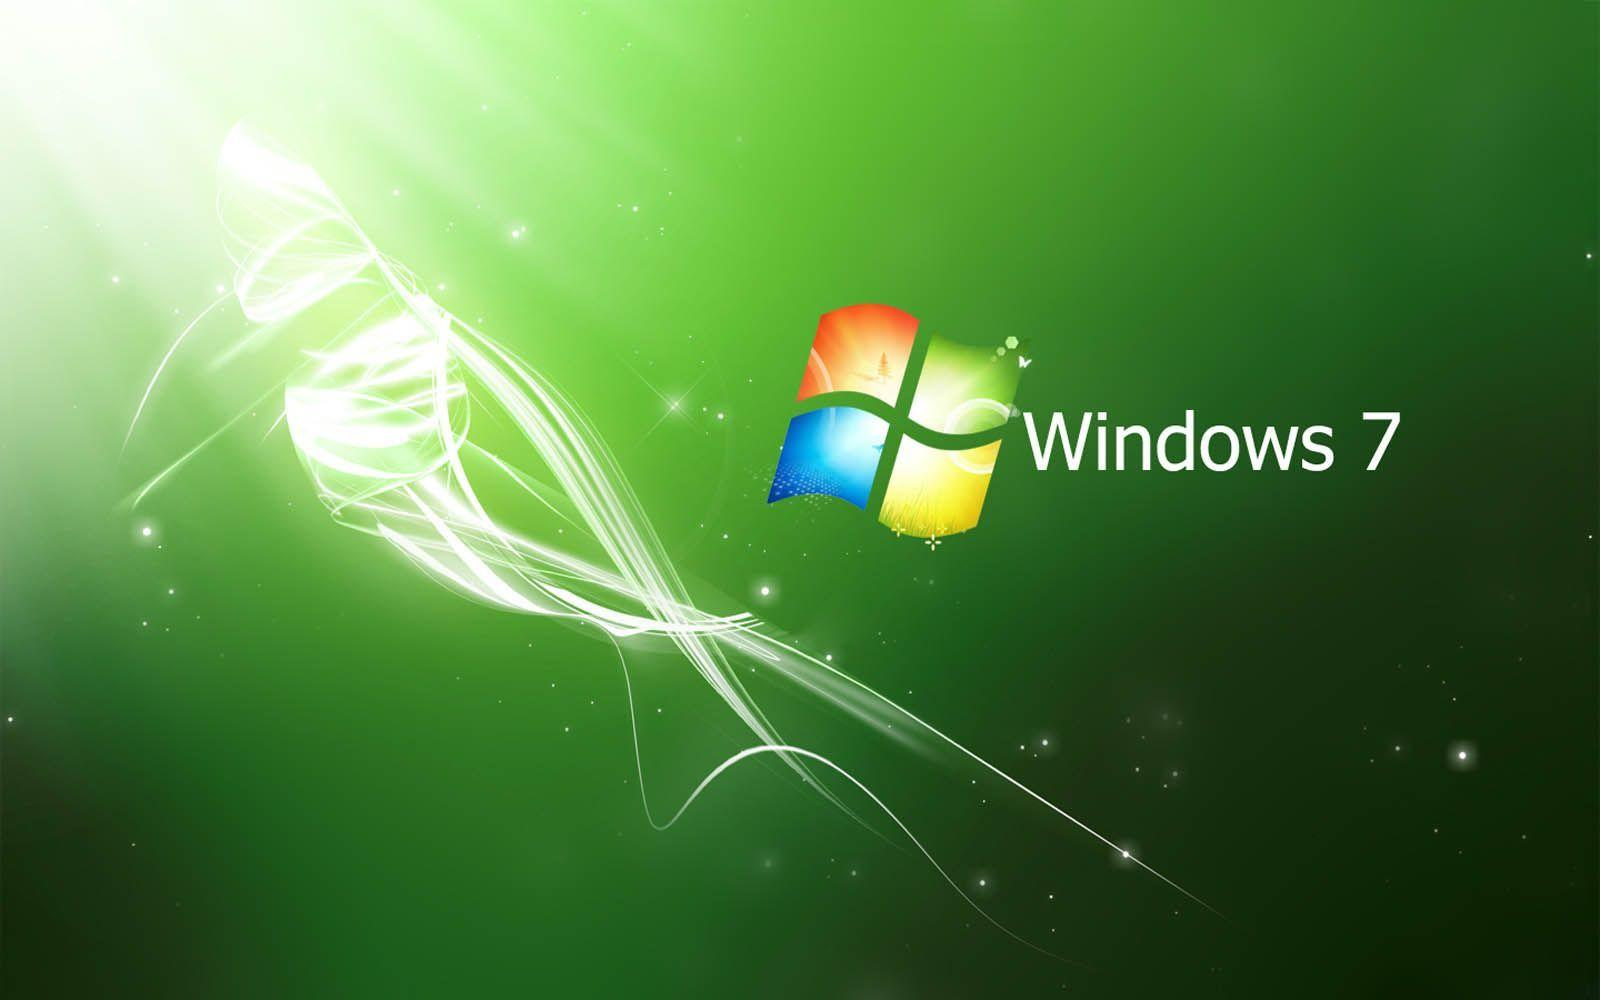 Hd Wallpapers Windows 7 Images 6 HD Wallpapers | Hdwalljoy.